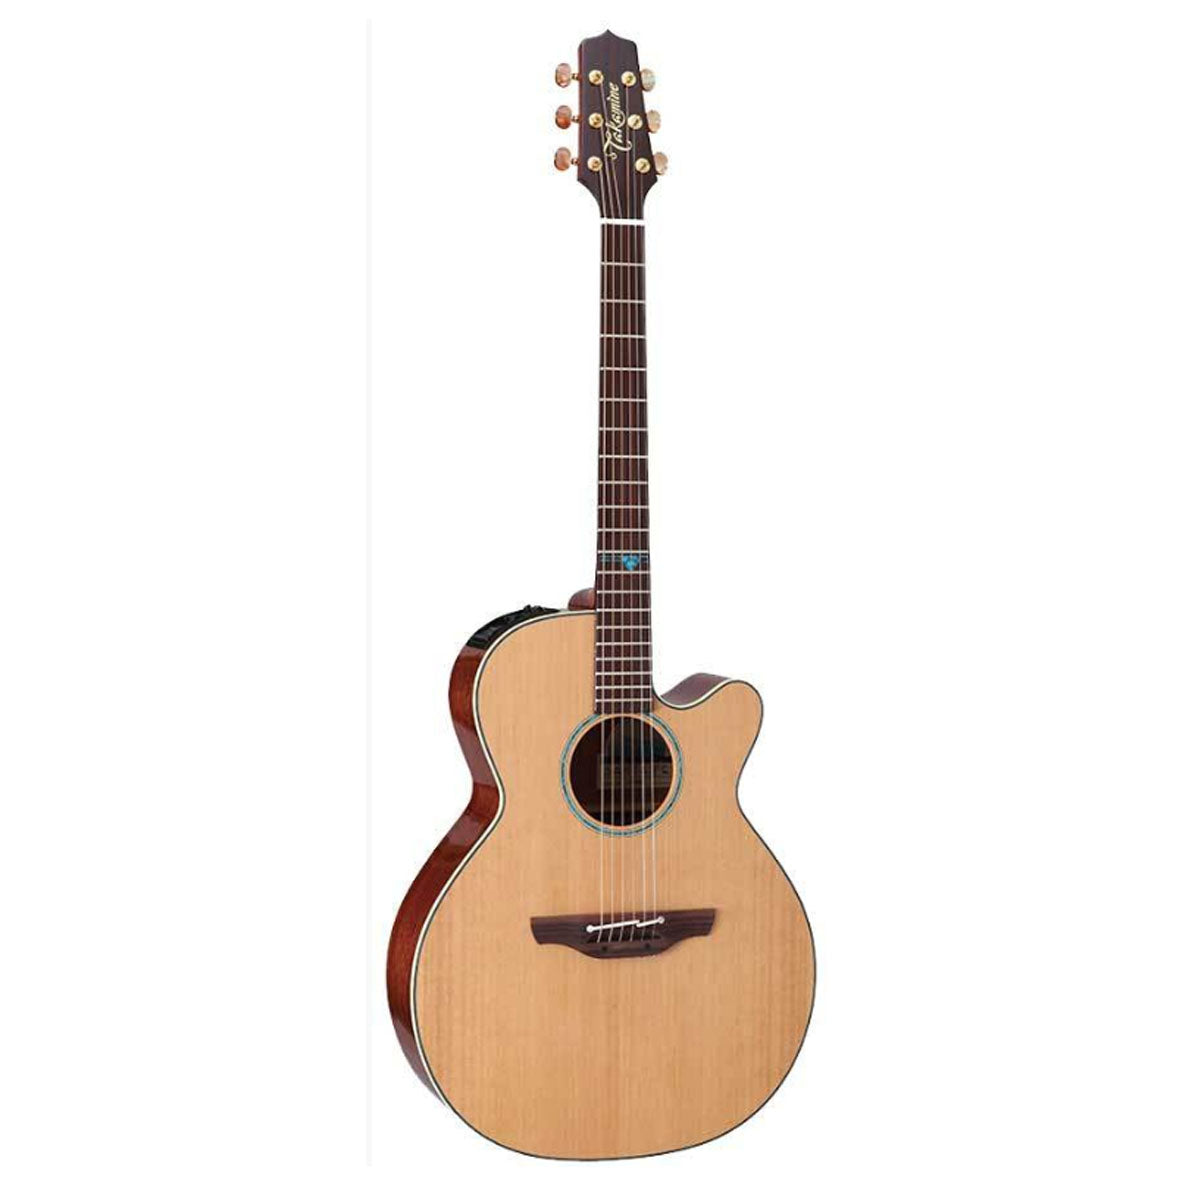 Takamine TSF40C Sante Fe Legacy Series Acoustic Guitar NEX Natural w/ Pickup